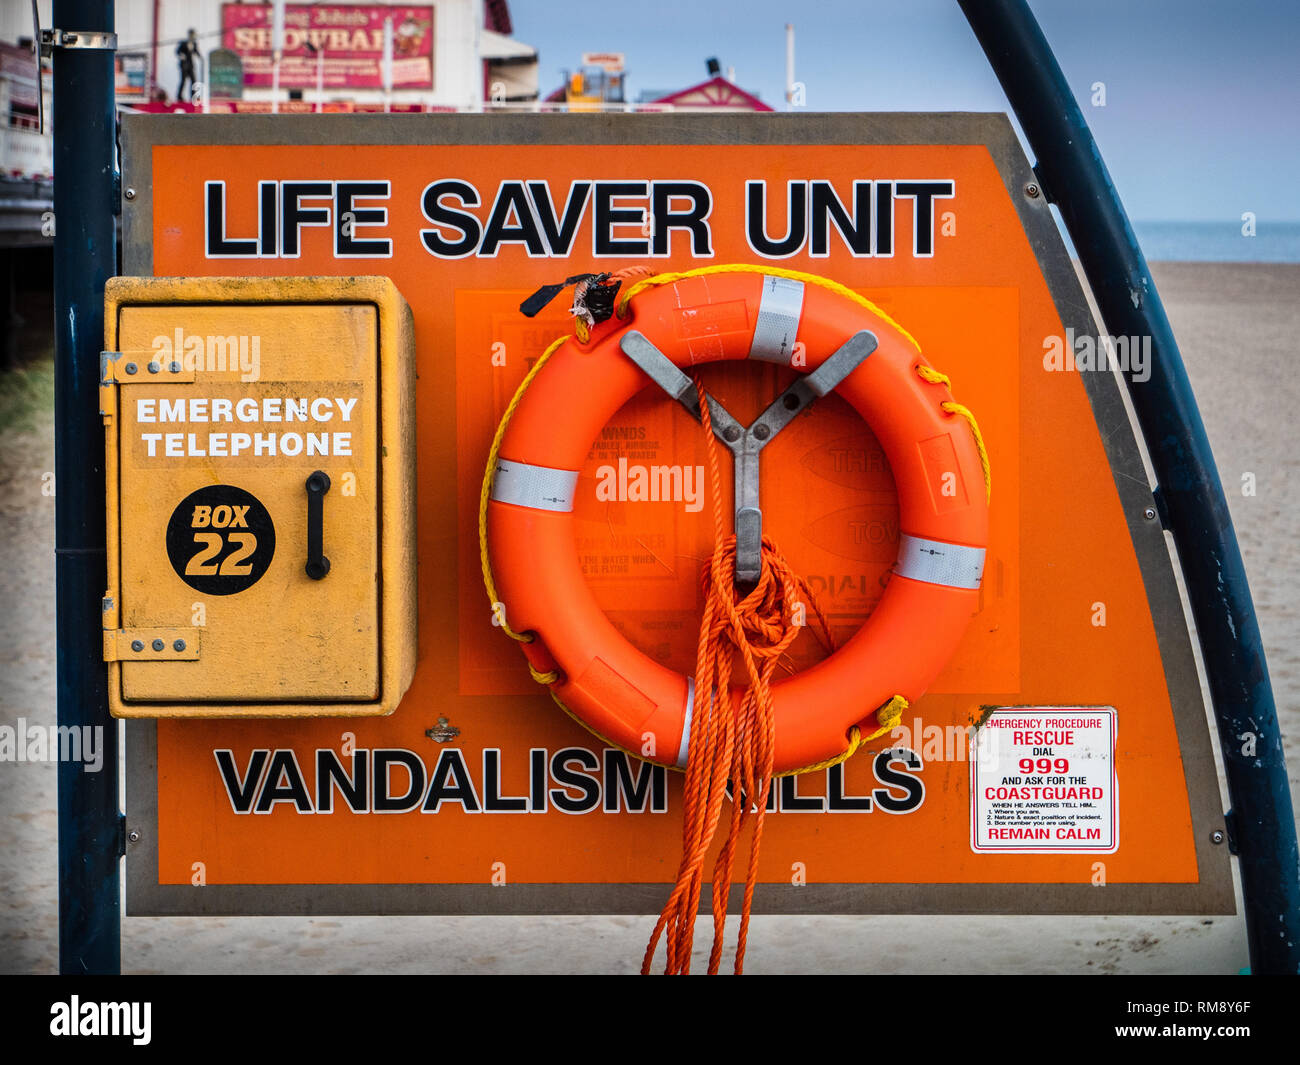 Life Saving Equipment - Life Saver Unit on Great Yarmouth Beach in Norfolk UK with vandalism notice - Stock Image